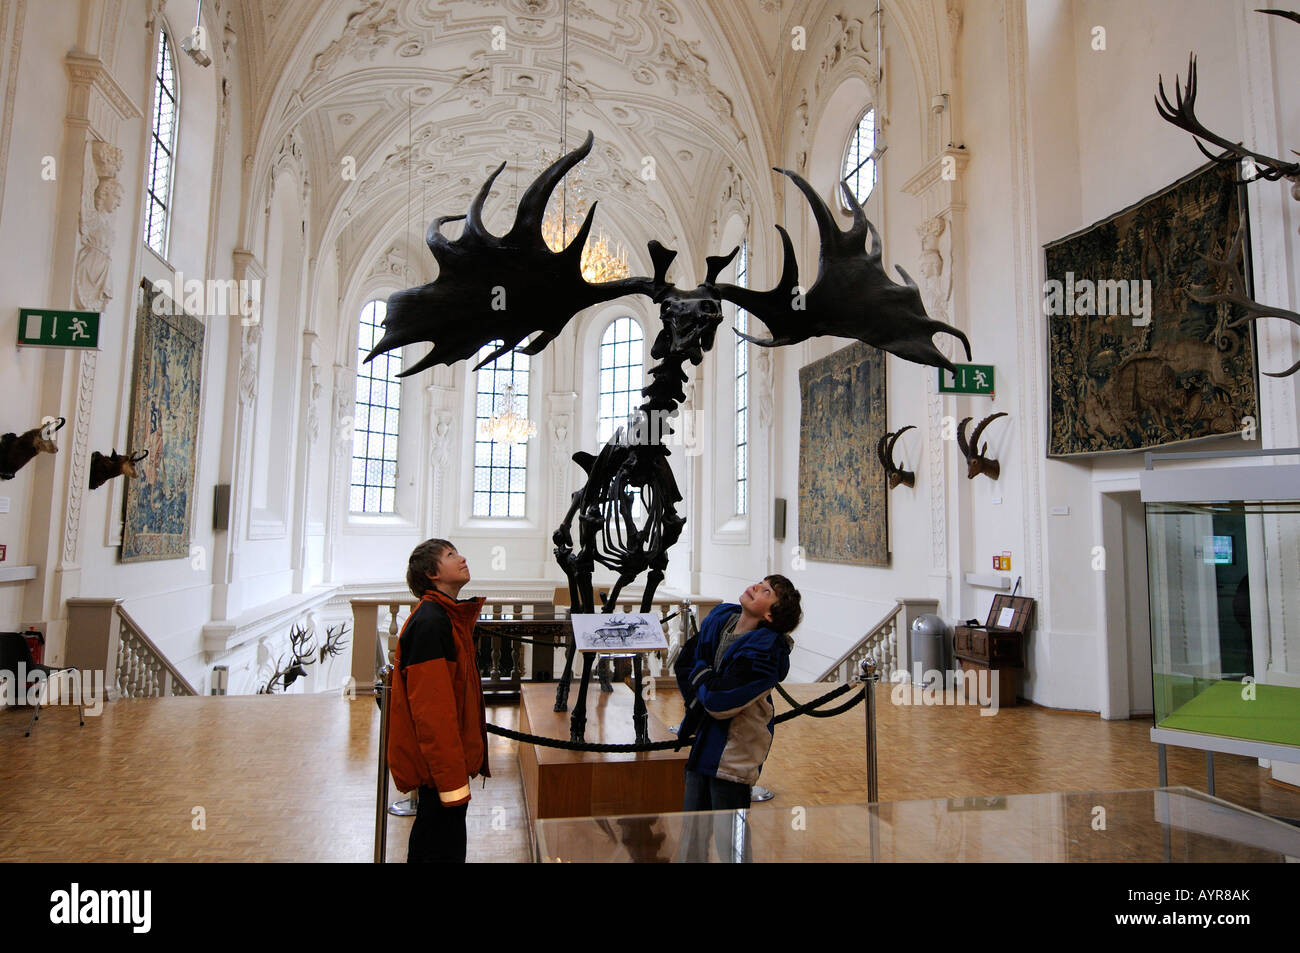 Children looking up in awe at a Megaloceros skeleton, Deutsches Jagd- und Fischereimuseum (German Hunting and Fishing - Stock Image